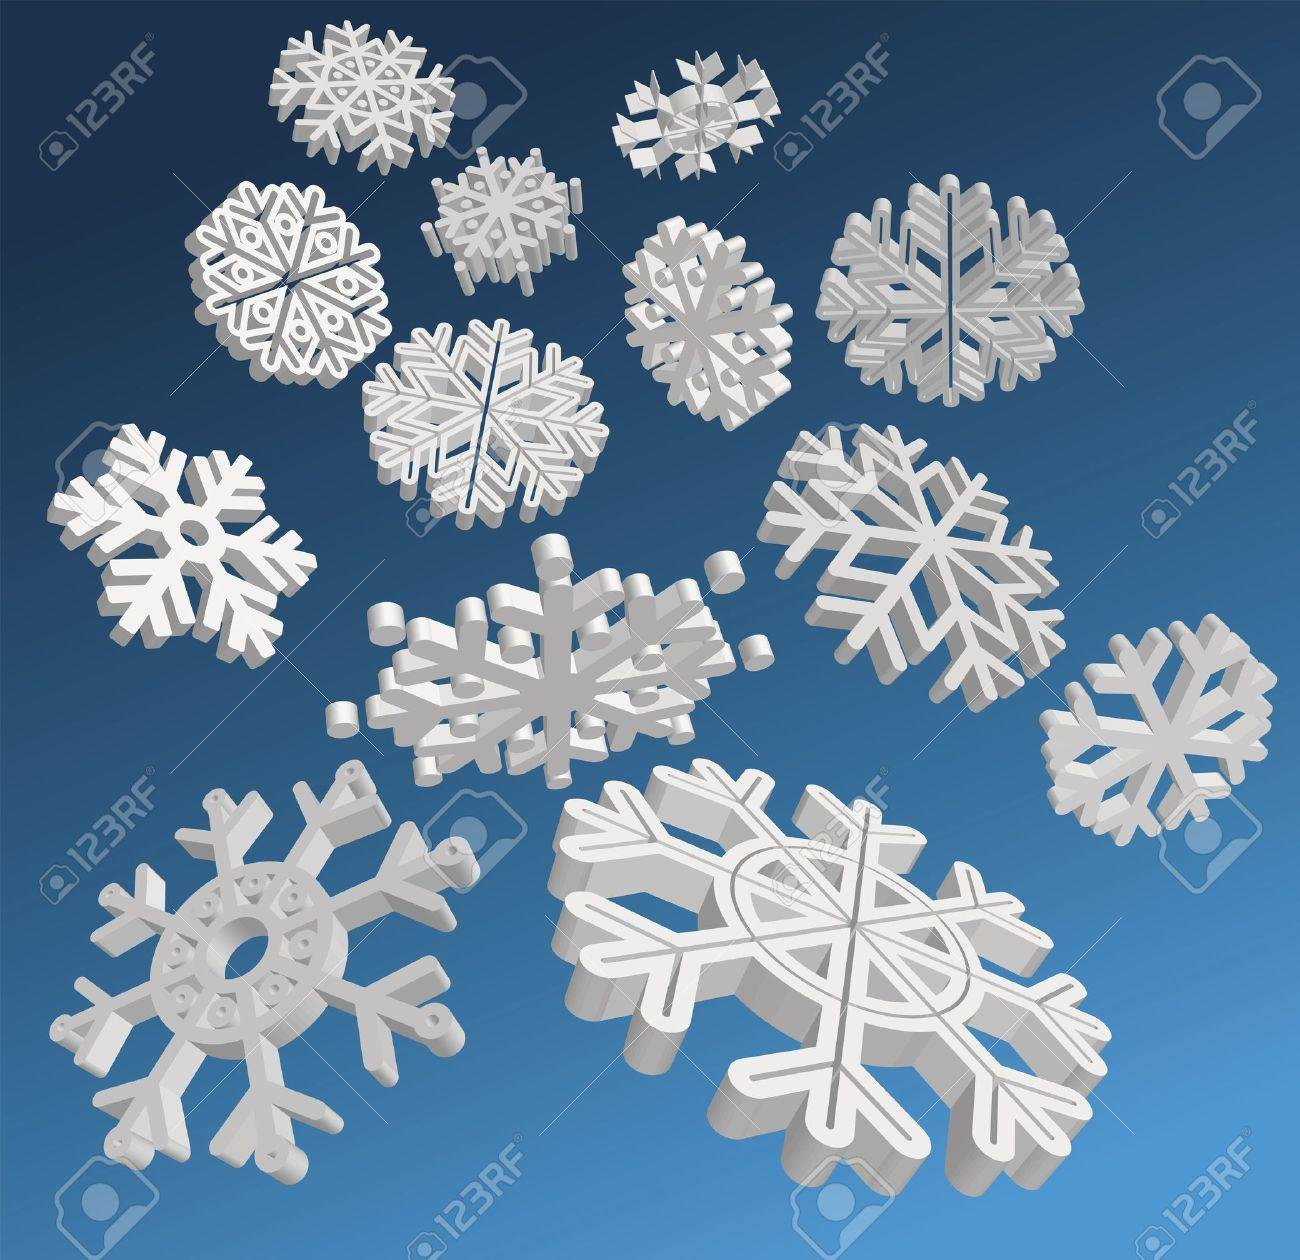 Falling 3D snowflakes. Stock Vector - 11681371